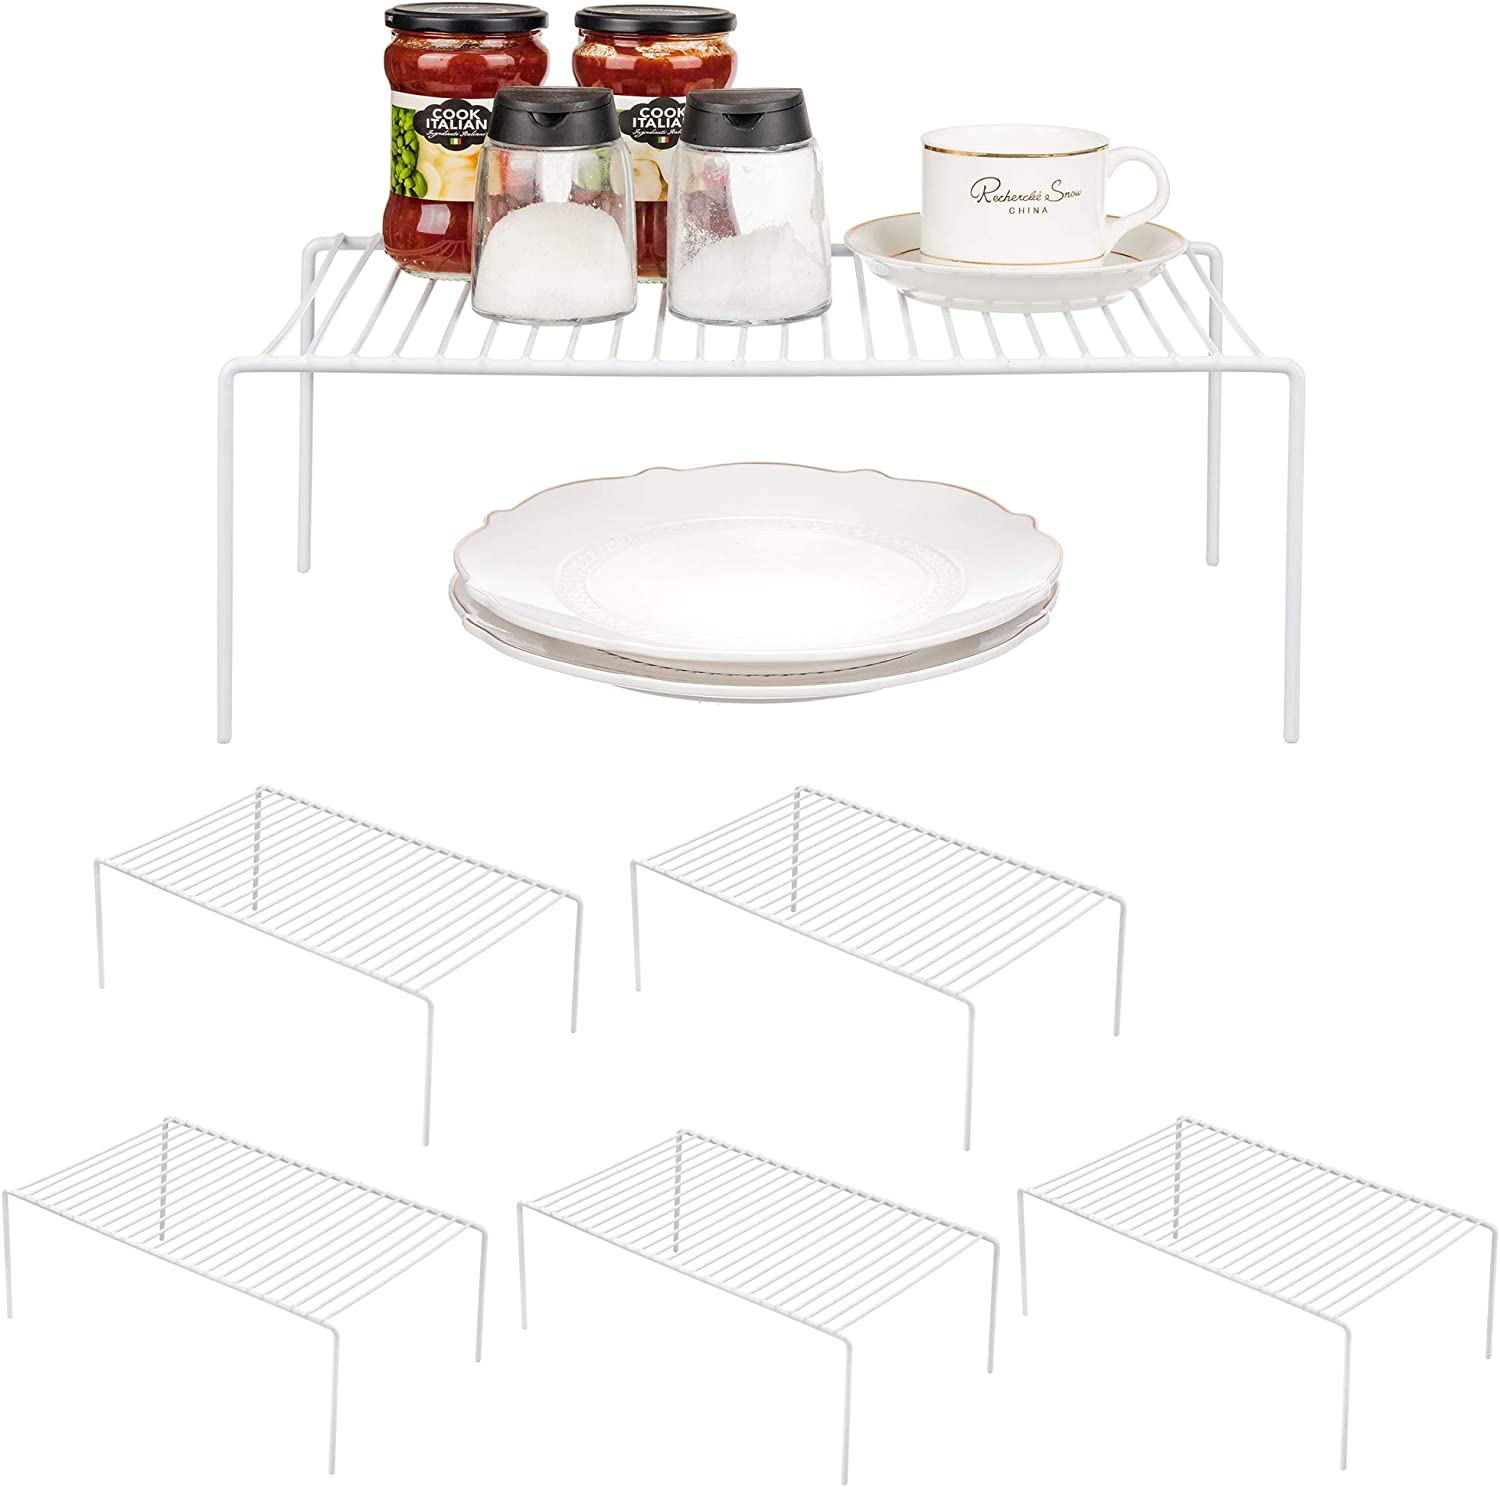 iPEGTOP 6 Pack Large Freezer Cabinet Storage Shelf Rack, Rustproof Stainless Steel Kitchen Organizer Space Saver for Fridge Pantry Shelves Countertops - White